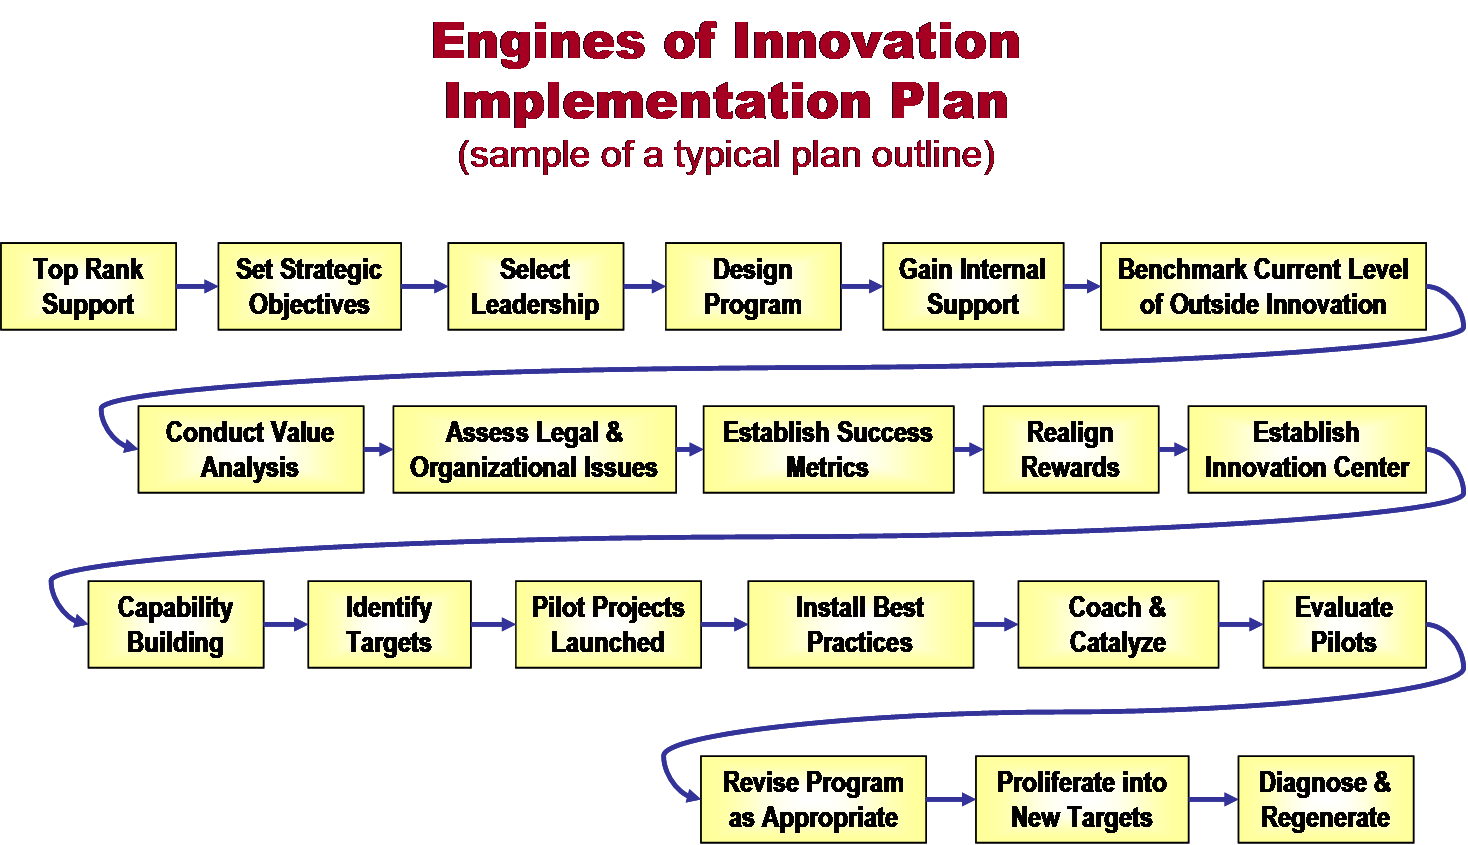 Full Scale Implementation Program